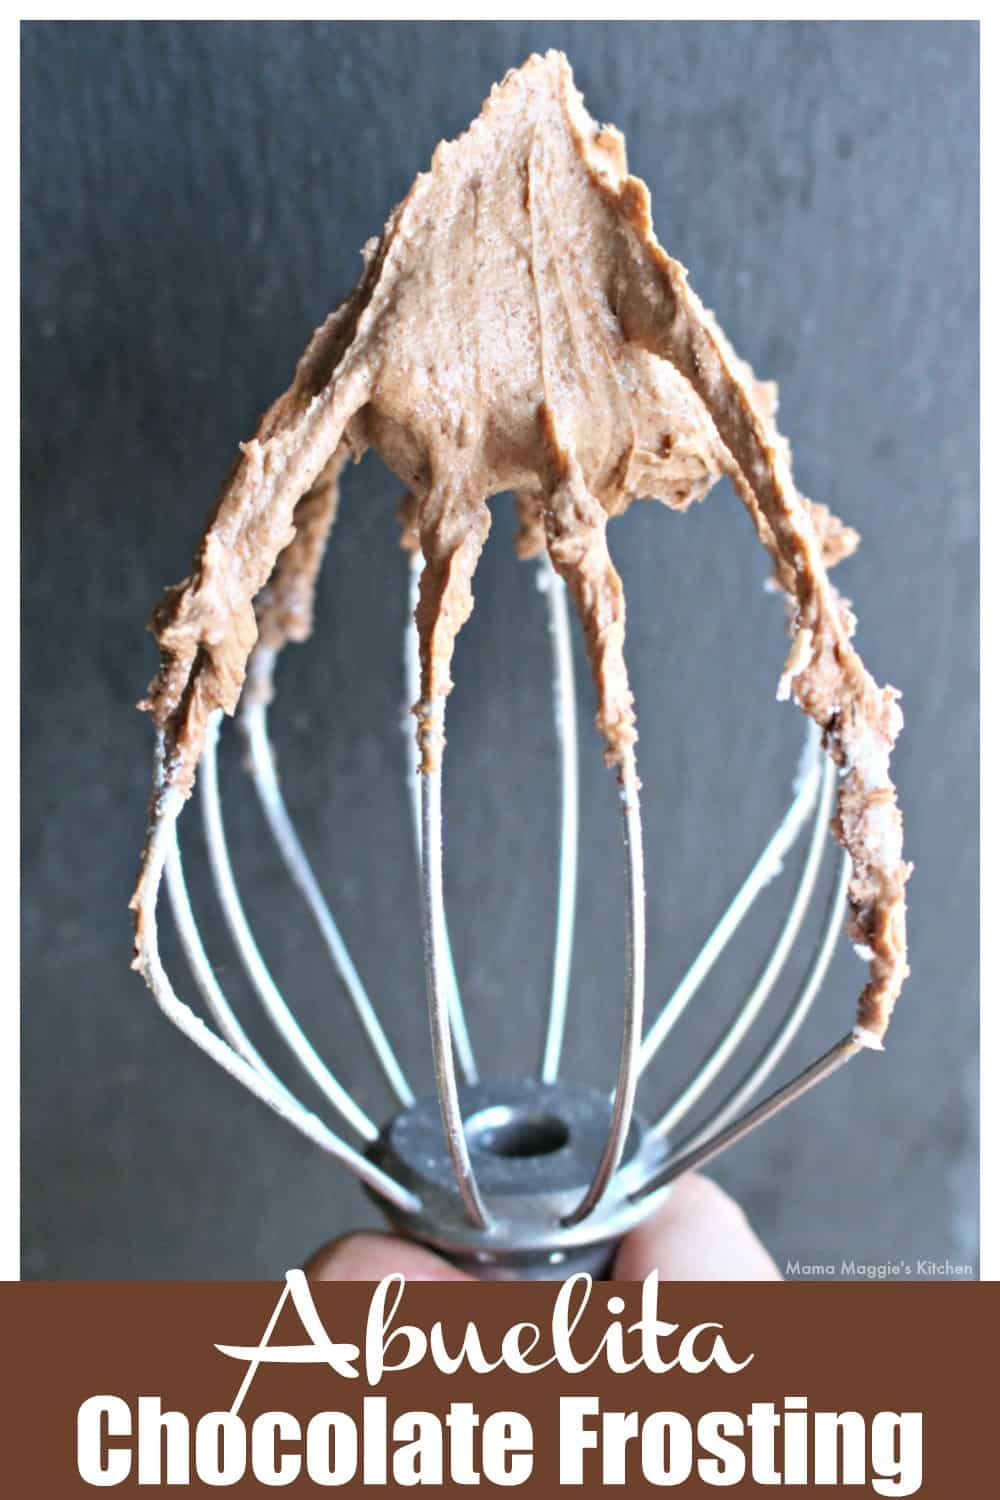 A mixer attachment covered in Abuelita Chocolate Frosting.